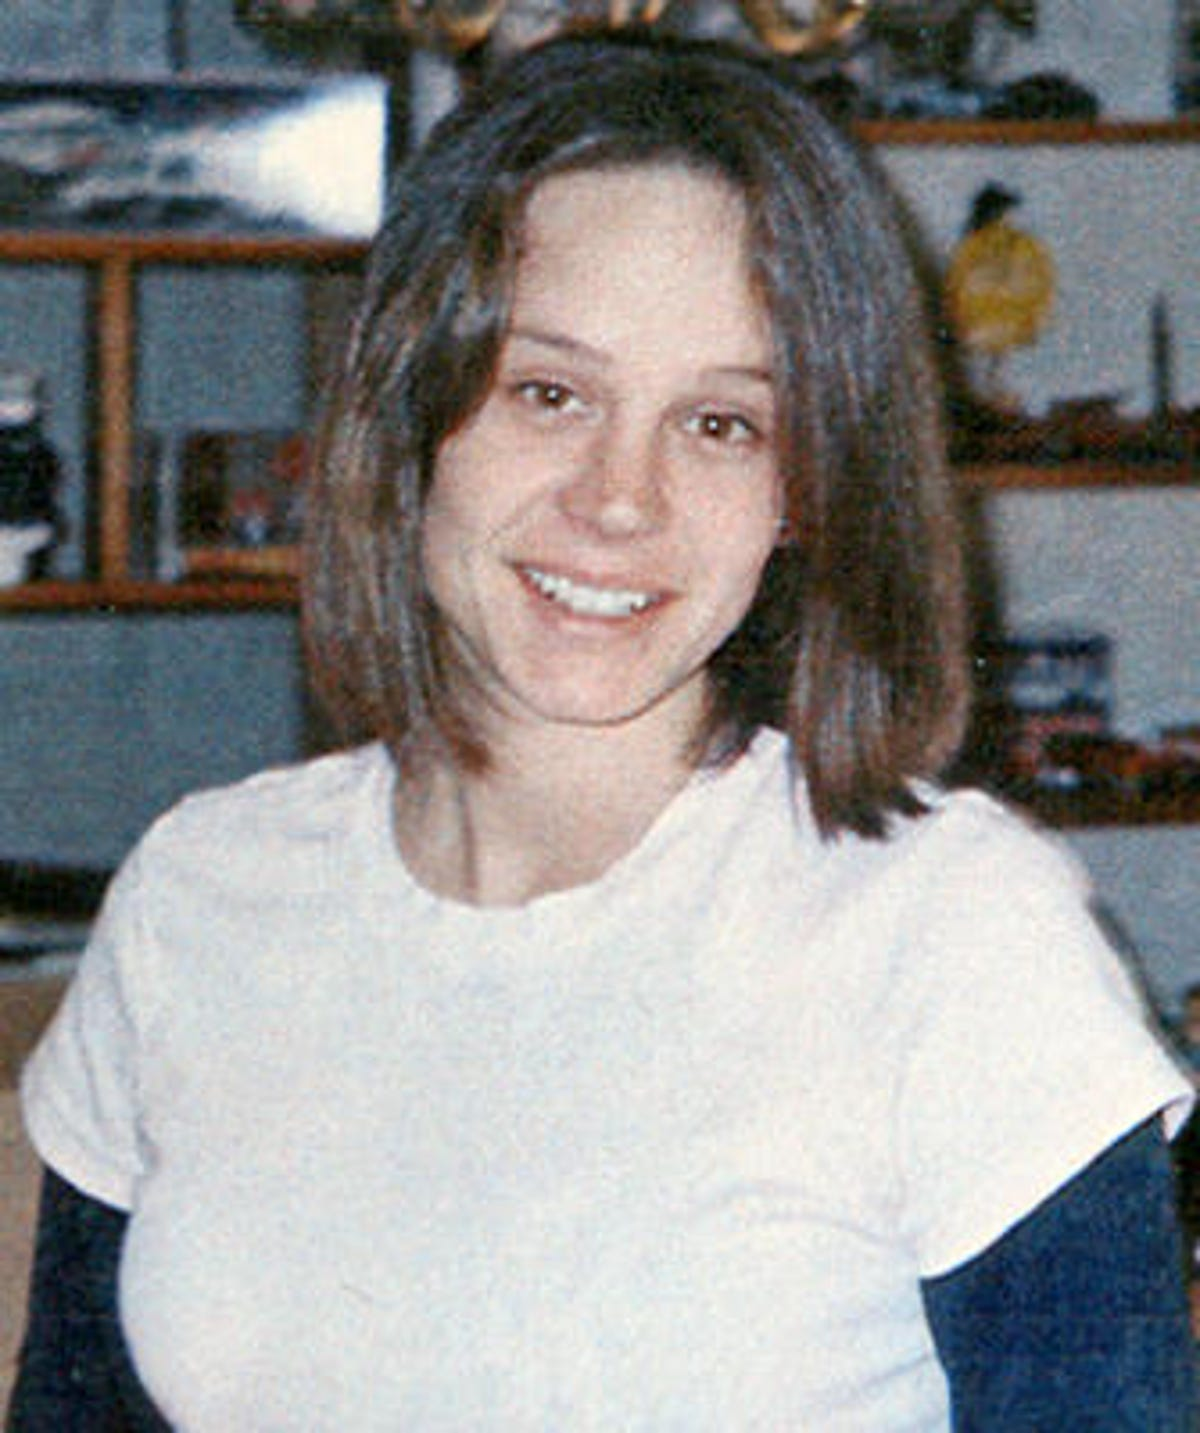 Margaret Haddican-McEnroe's 2006 disappearance remains unsolved